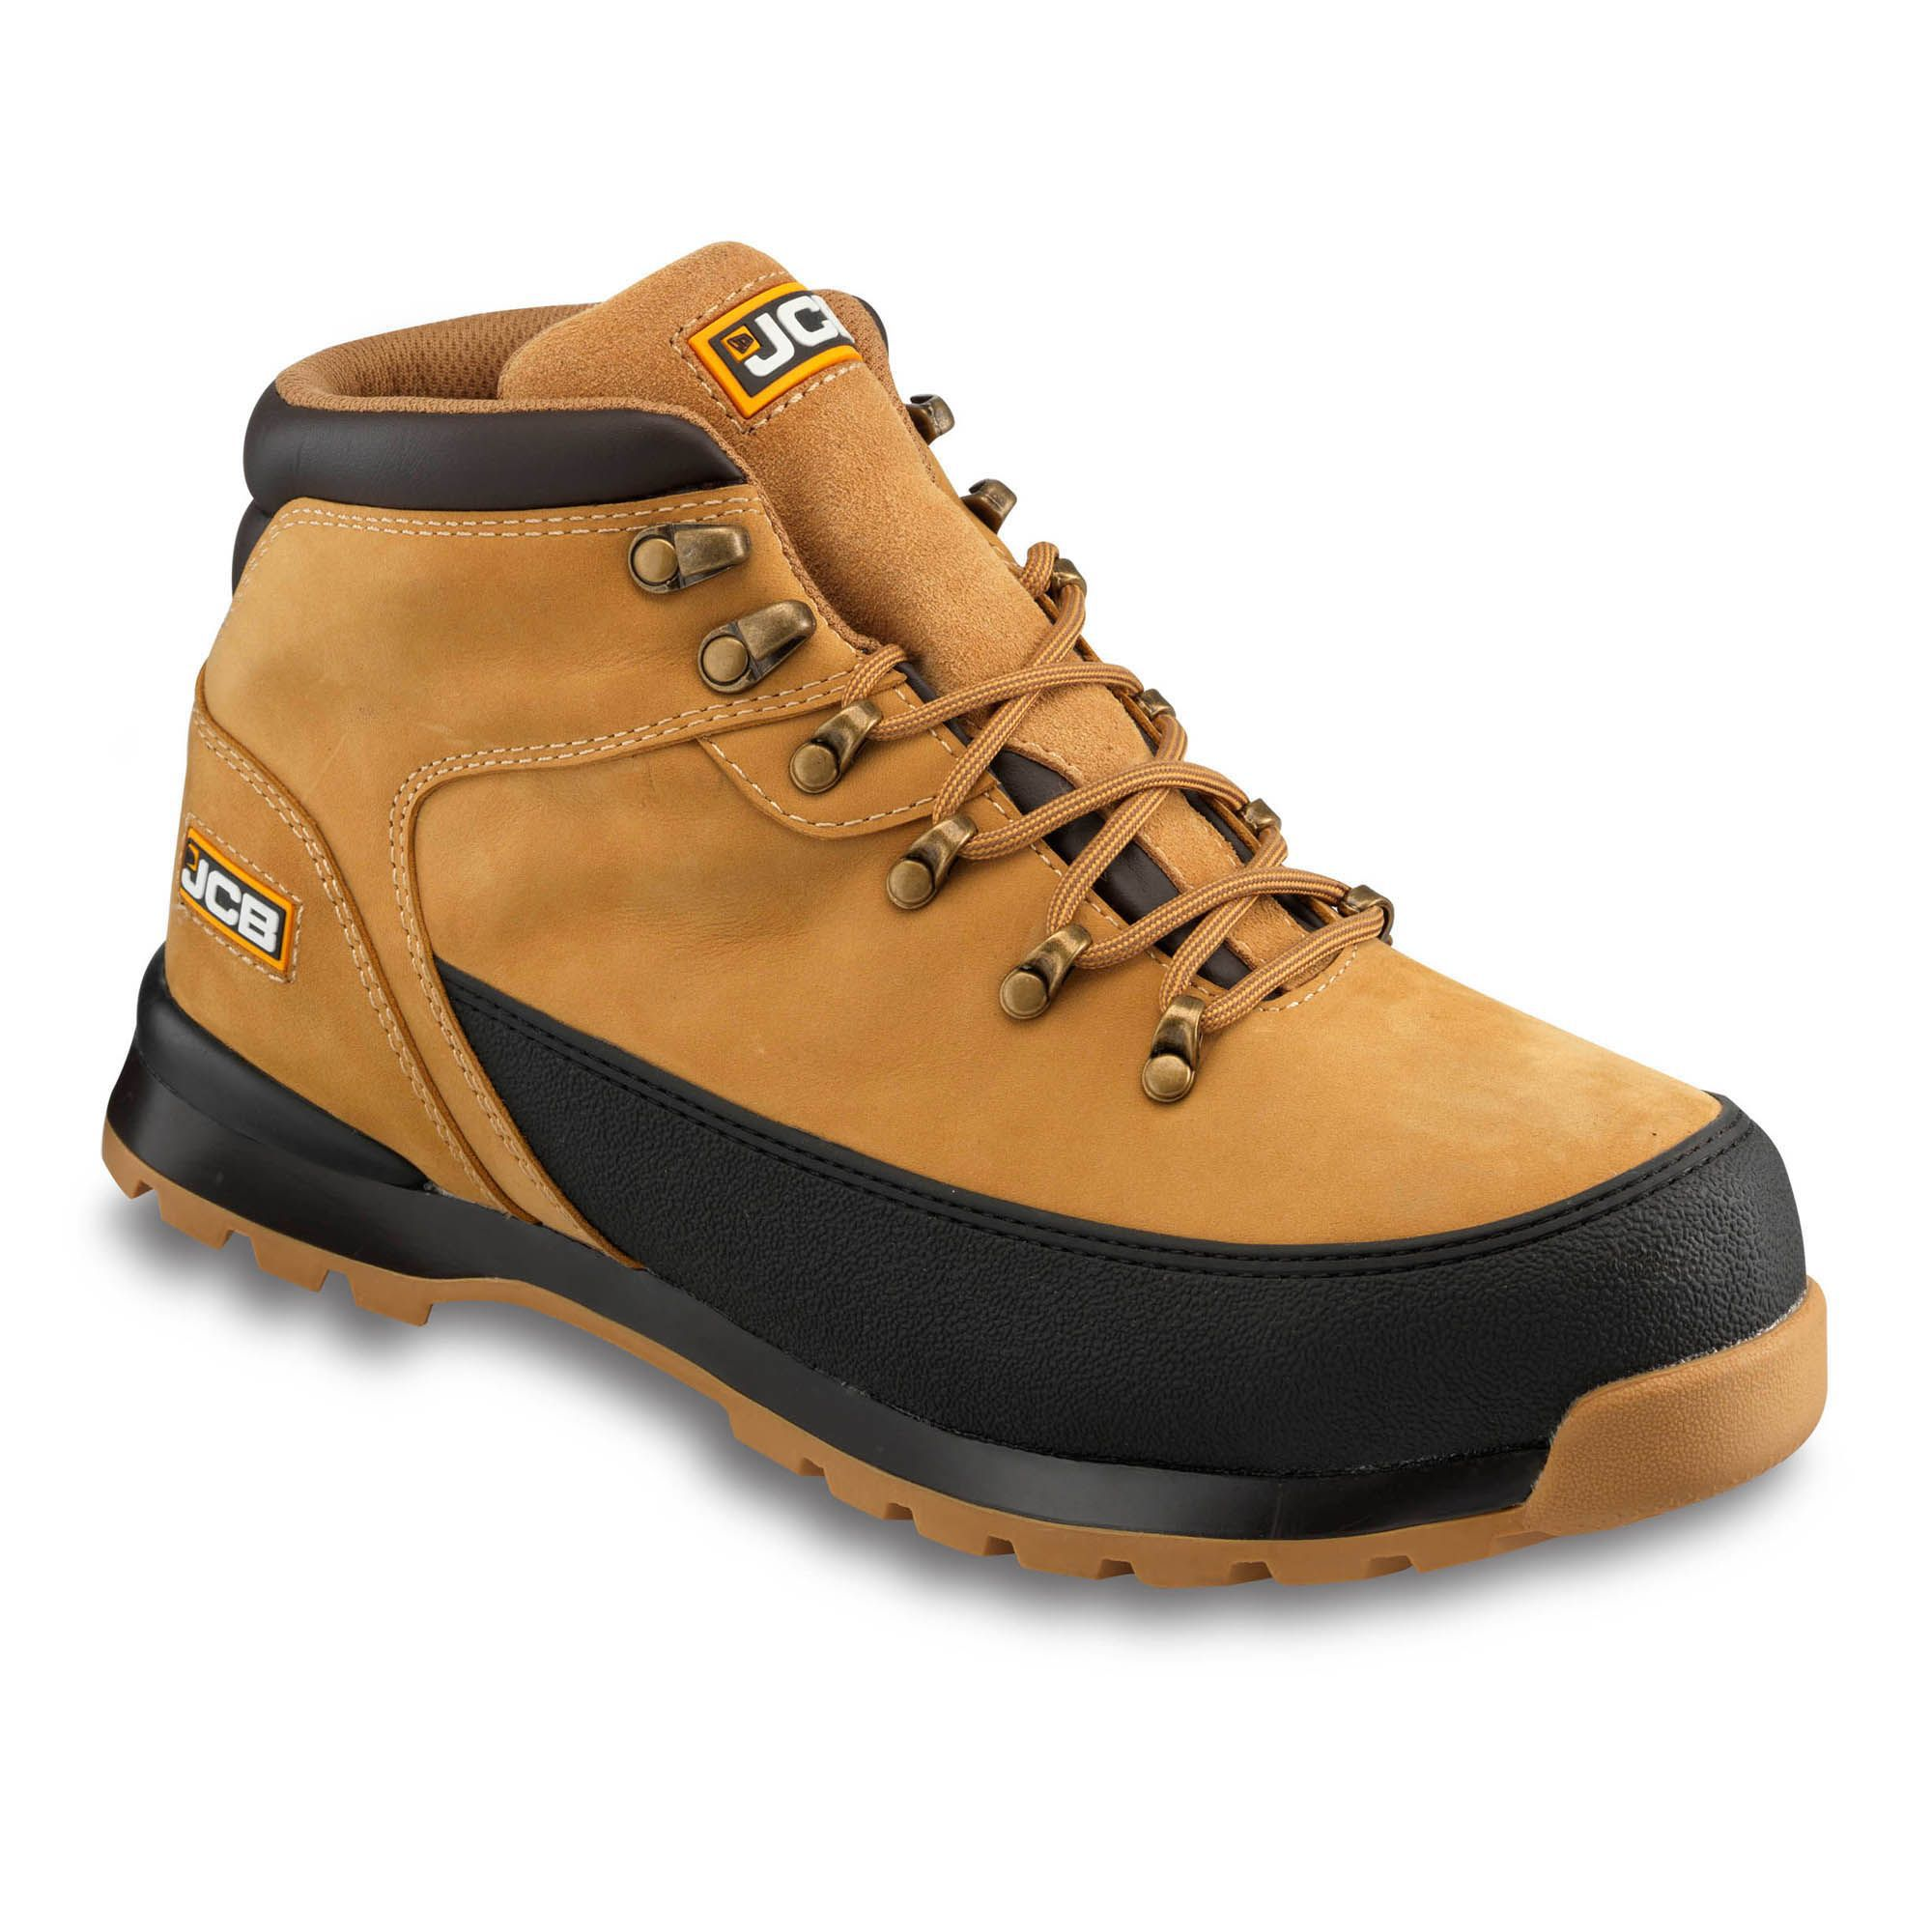 Jcb Honey 3cx Boots, Size 7